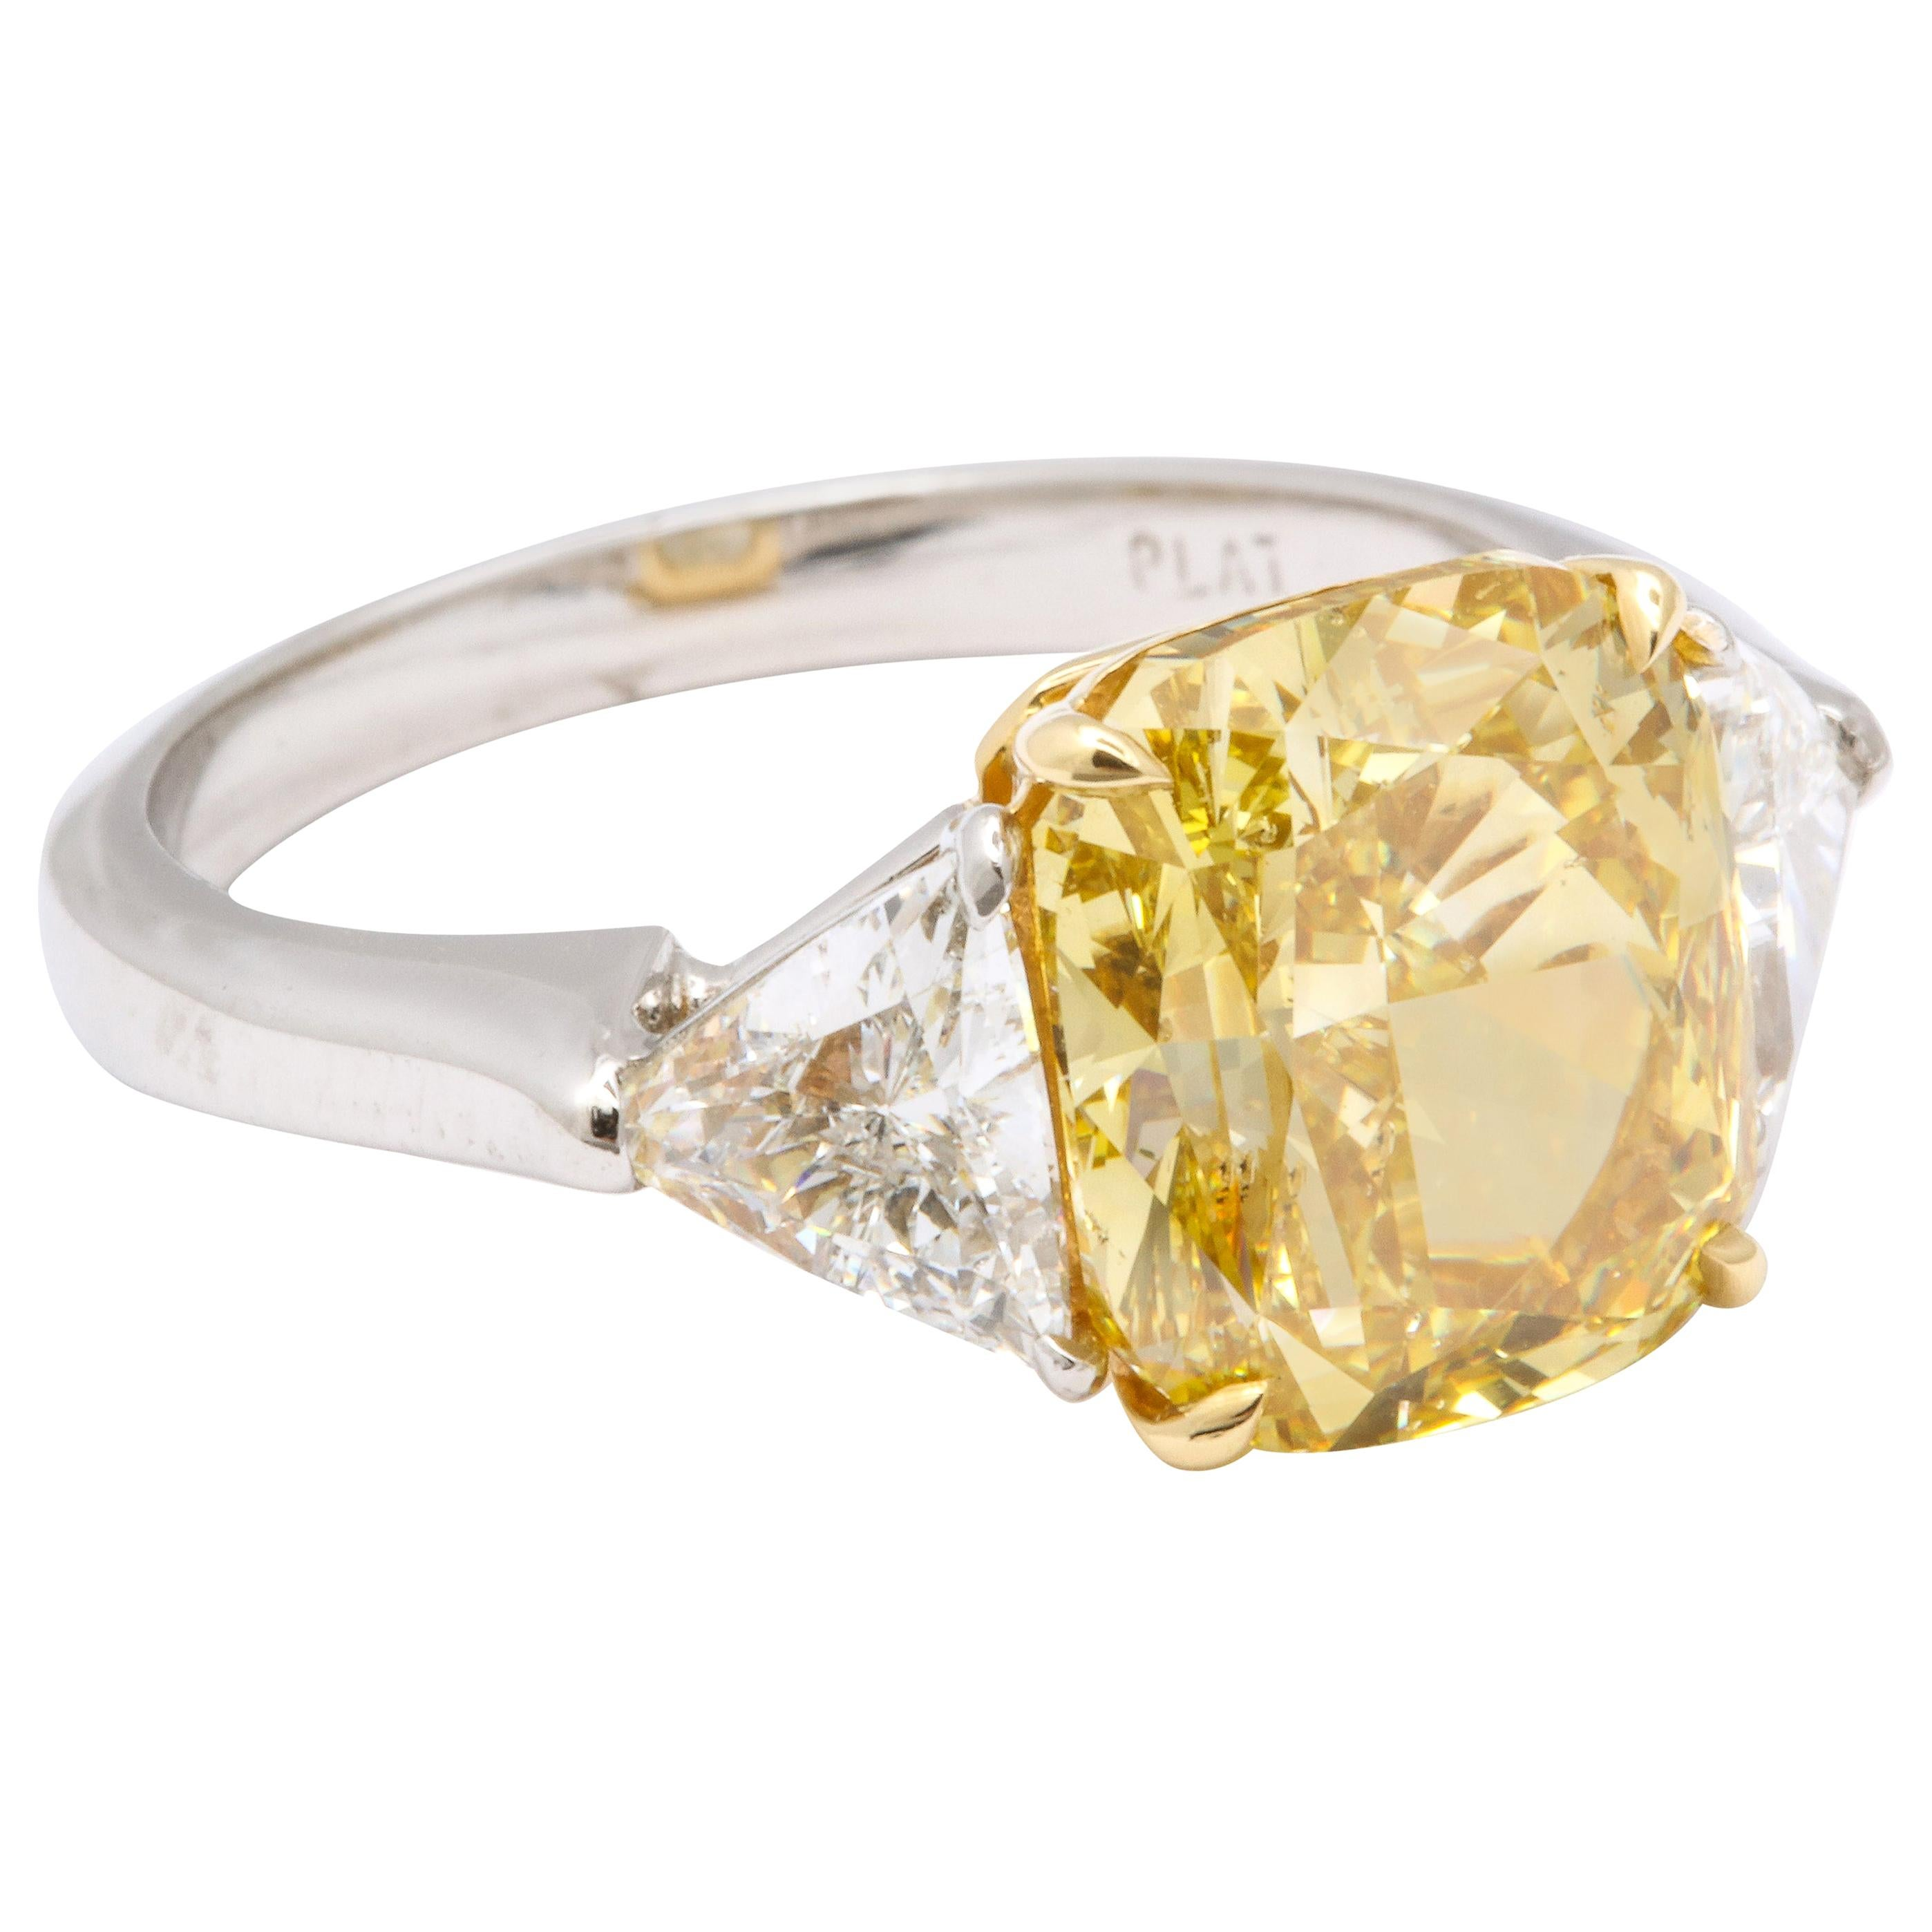 GIA Certified 4 Carat Fancy Intense Yellow Diamond Ring